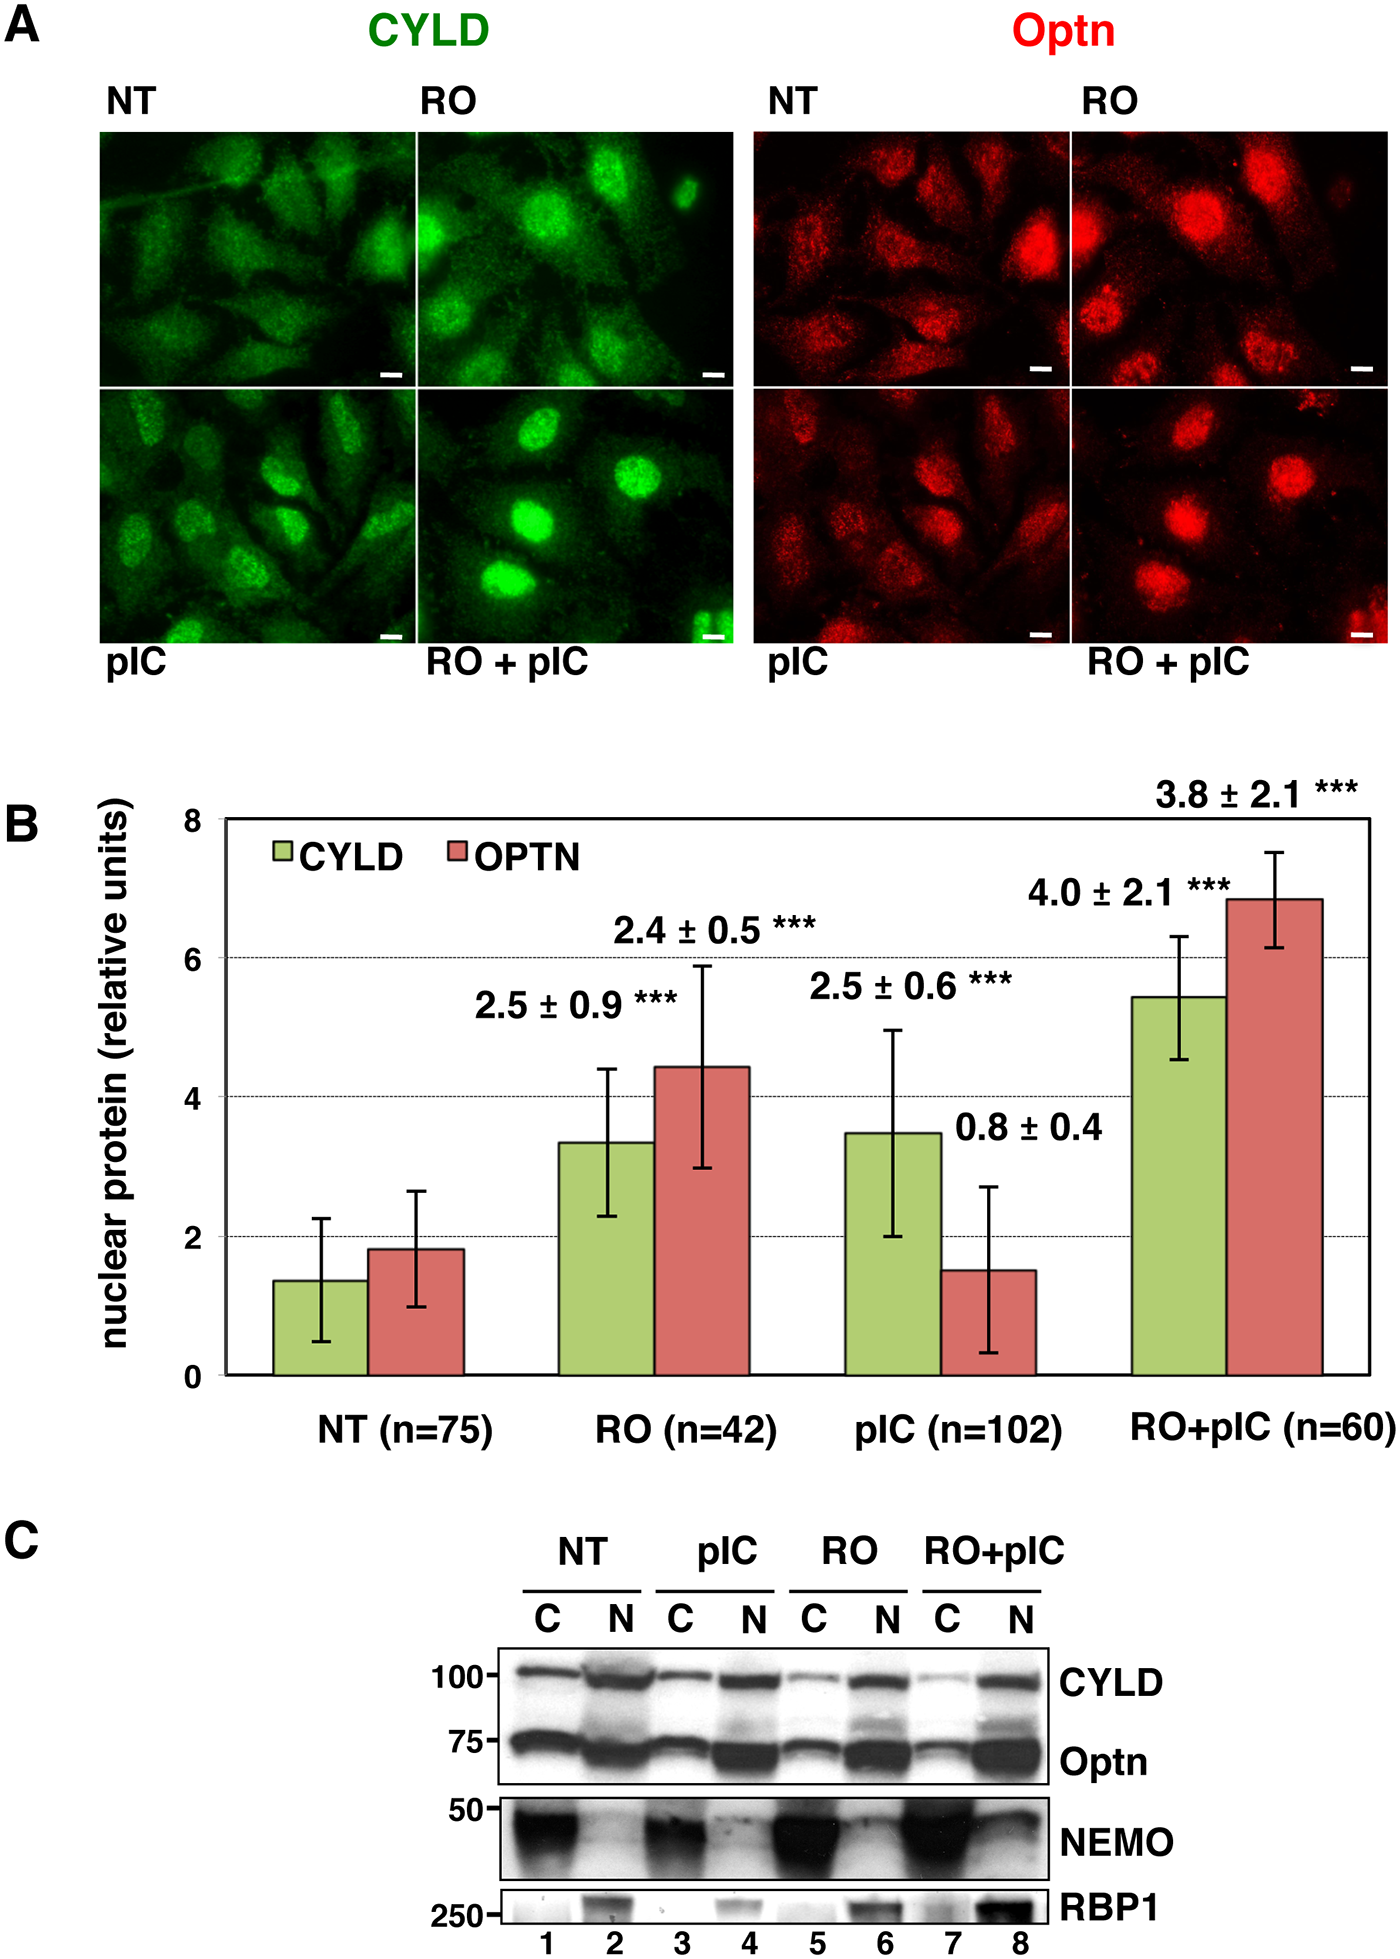 CYLD and Optn accumulate in the nuclei of G2/M synchronized cells.